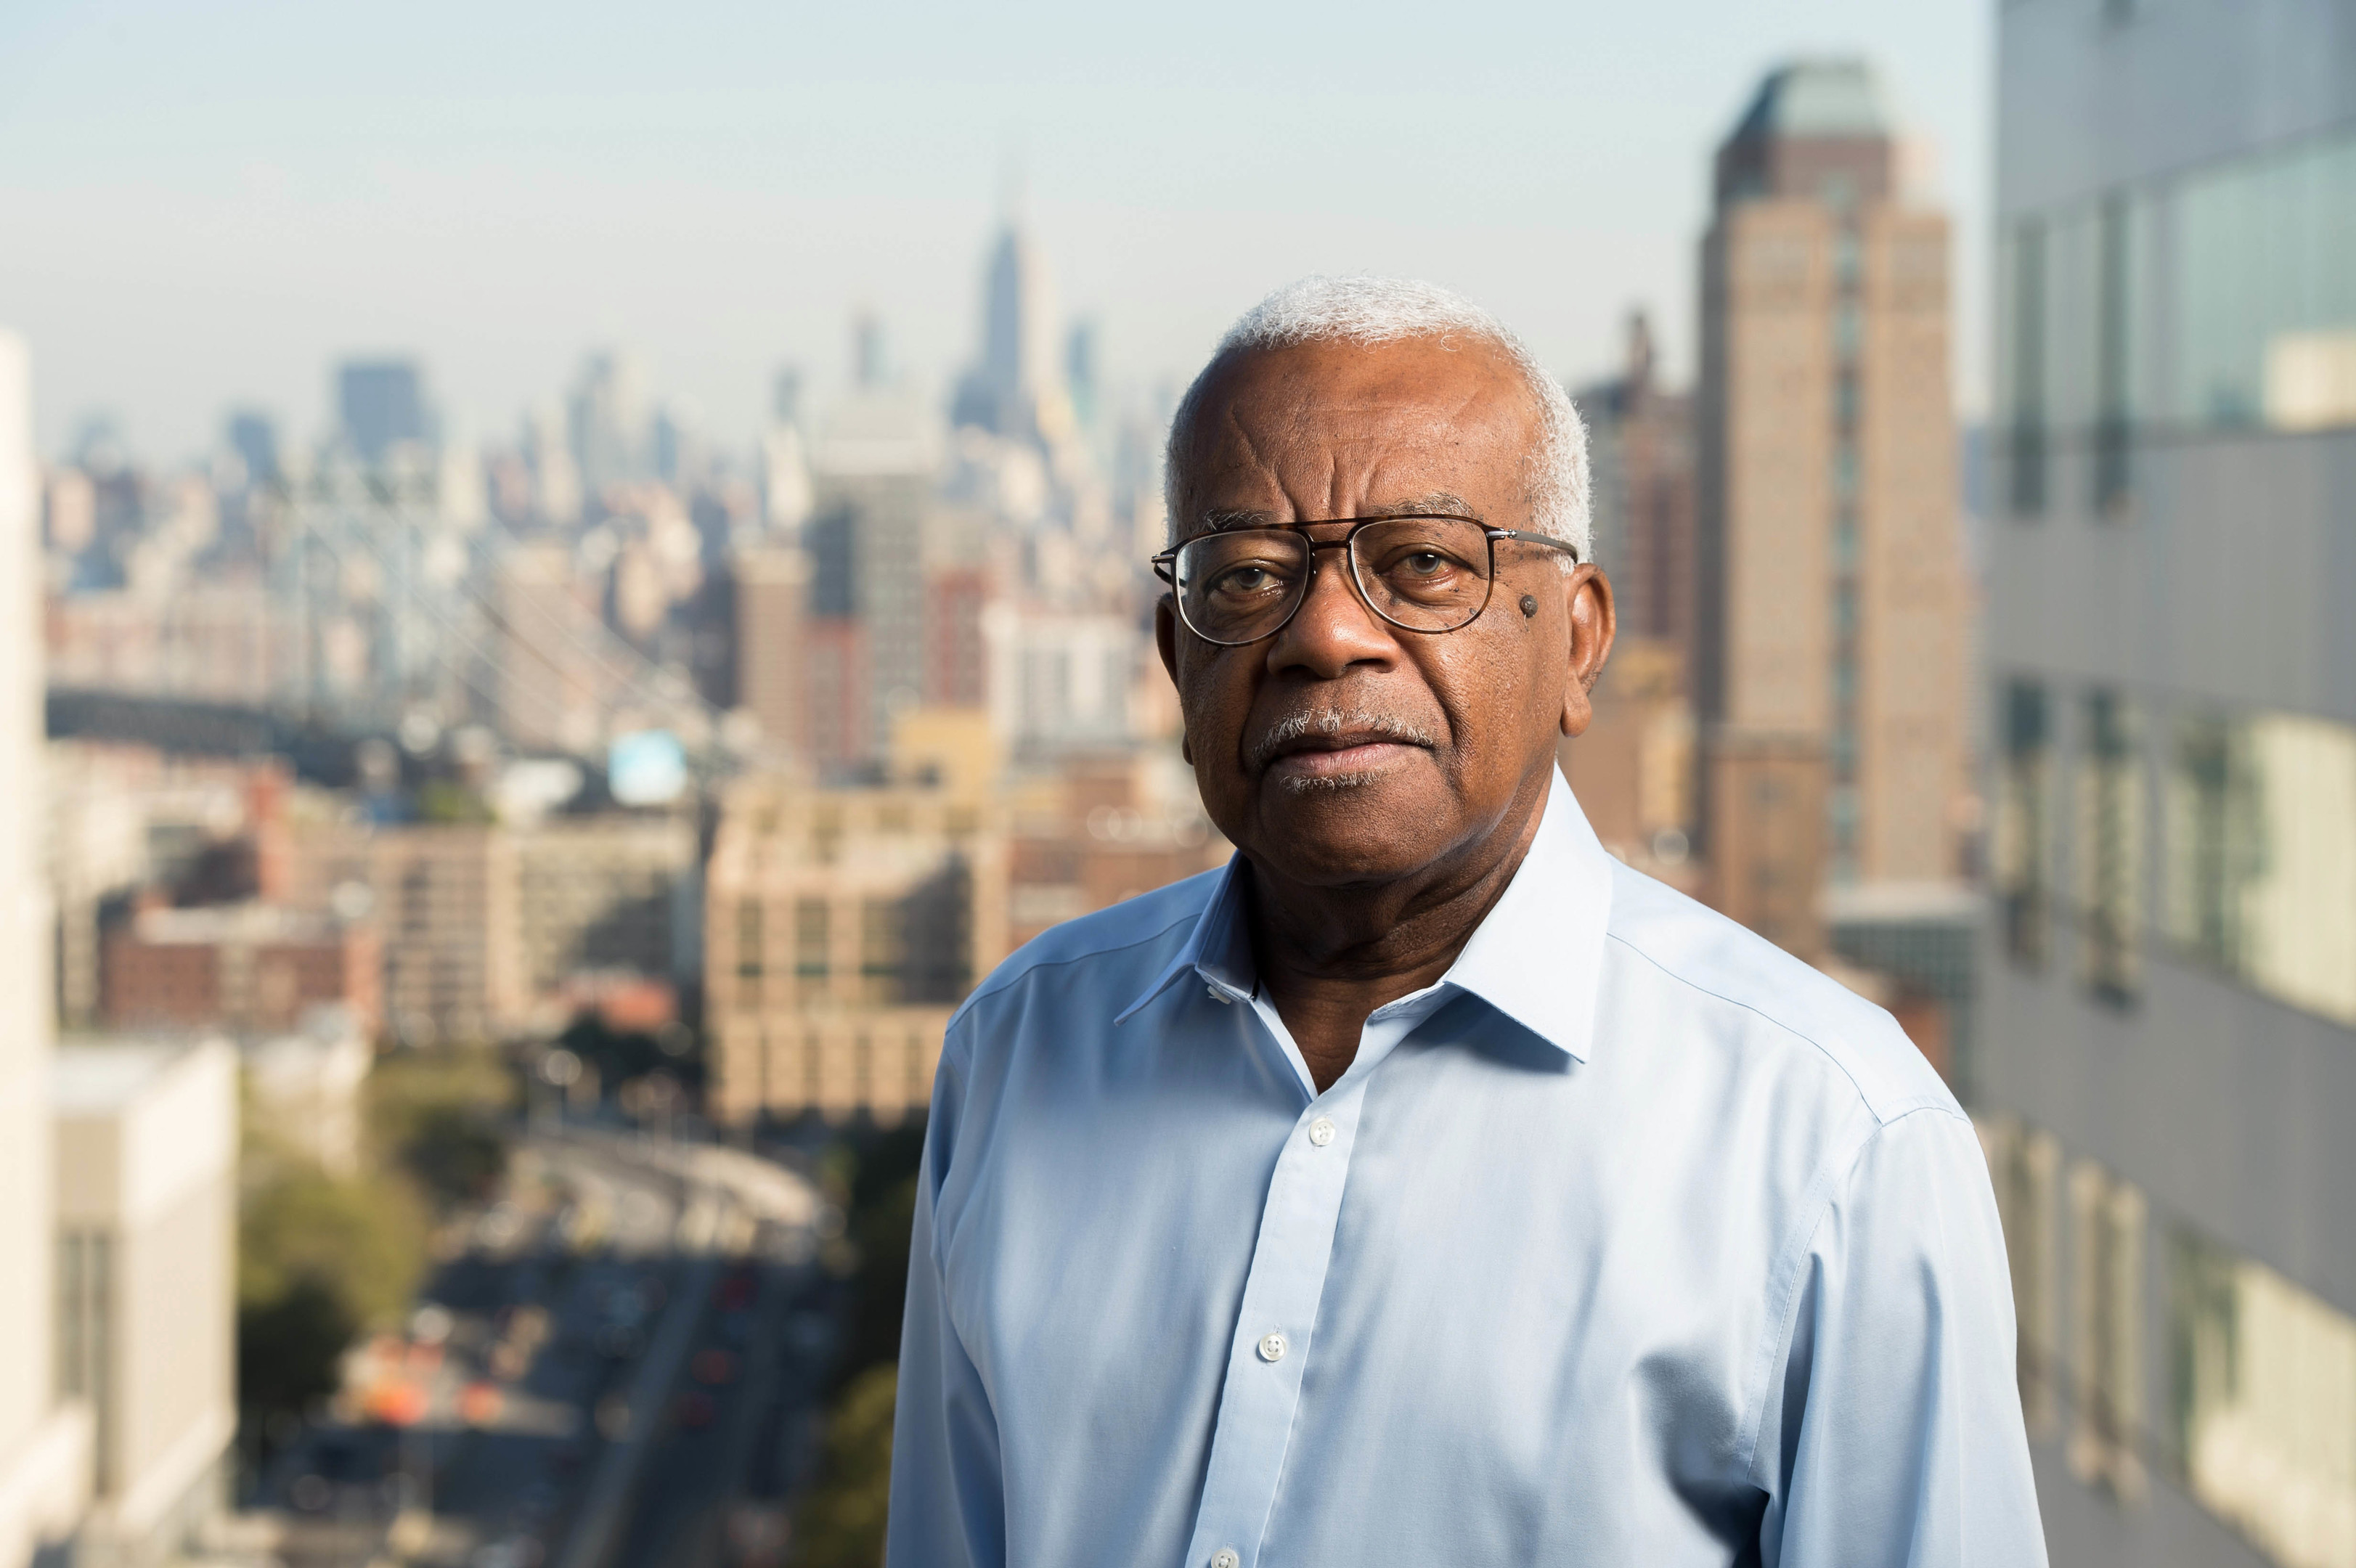 Trevor McDonald in New York skyline (ITV / Charlie Sykes)